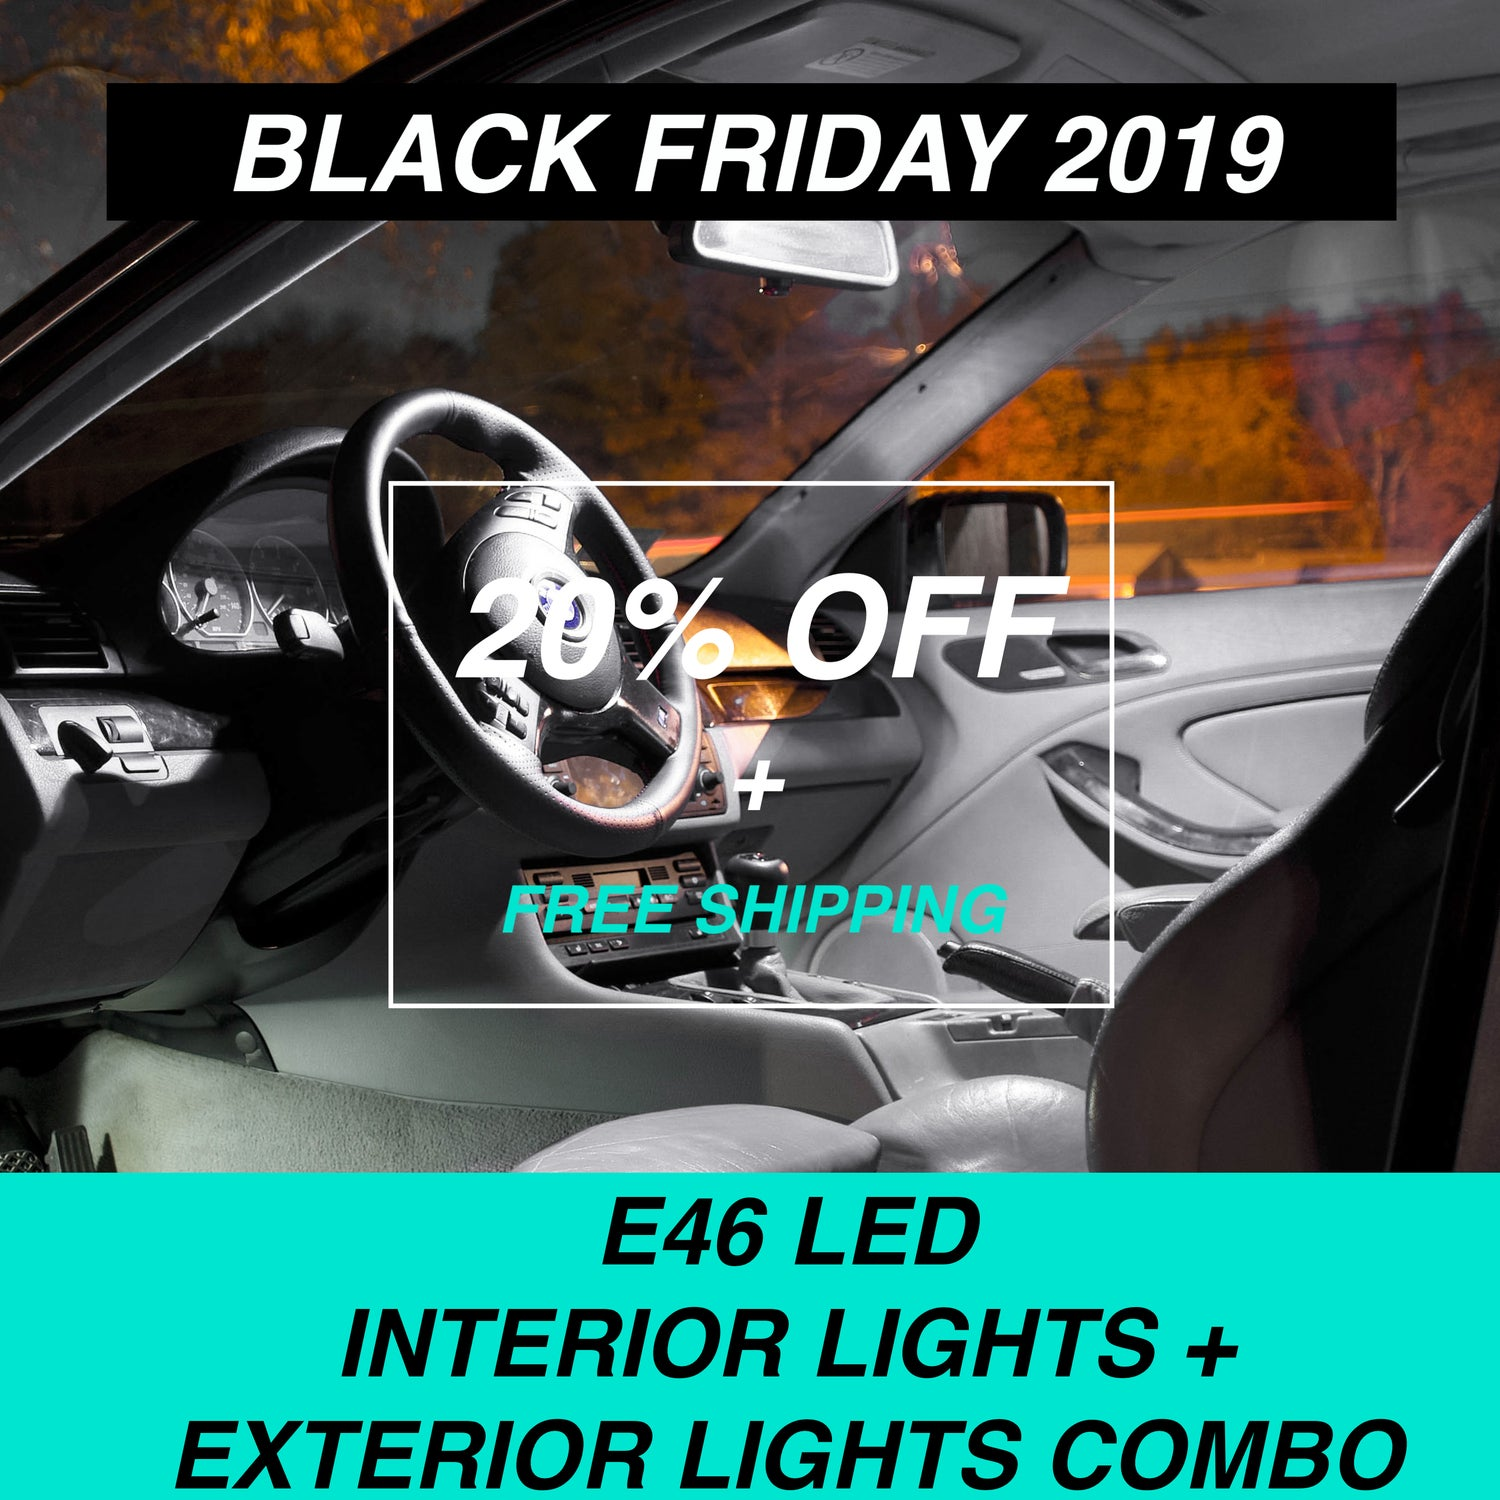 Image of BMW - 3 SERIES E46 LED INTERIOR + EXTERIOR LIGHTS COMBO DEAL